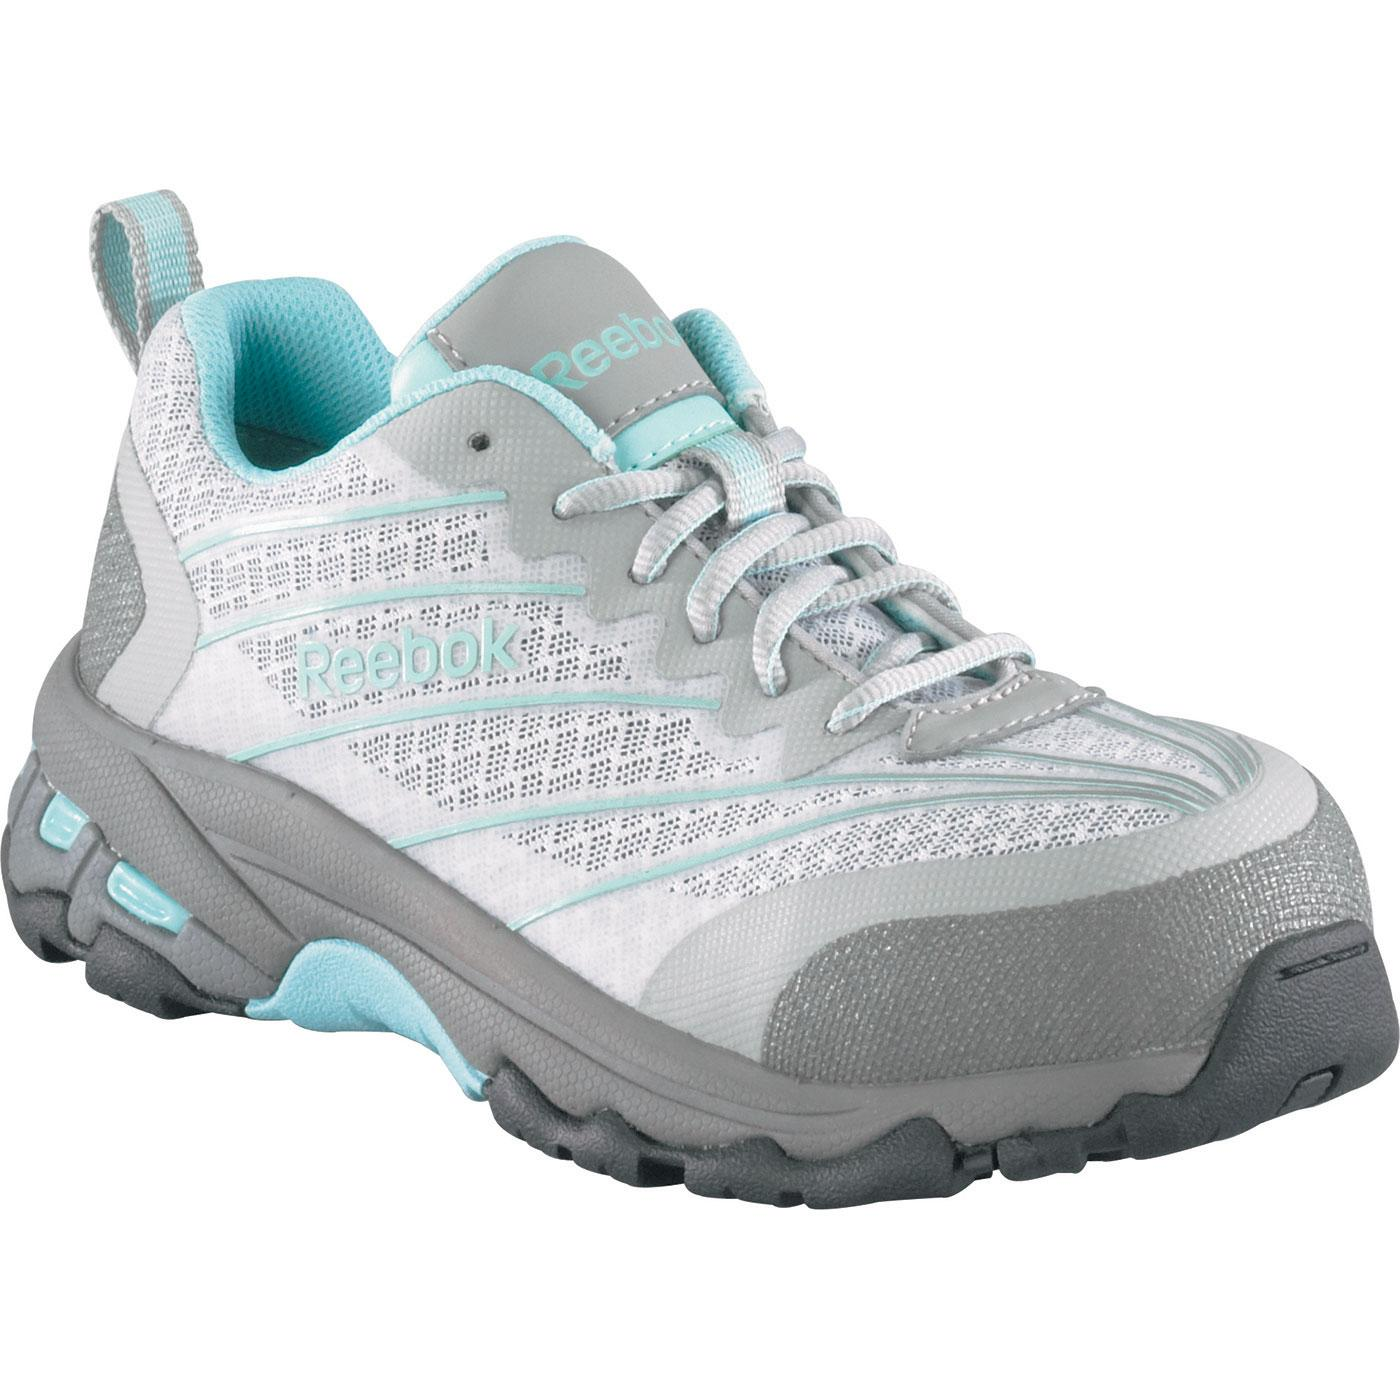 Athletic Works Women S Shoes